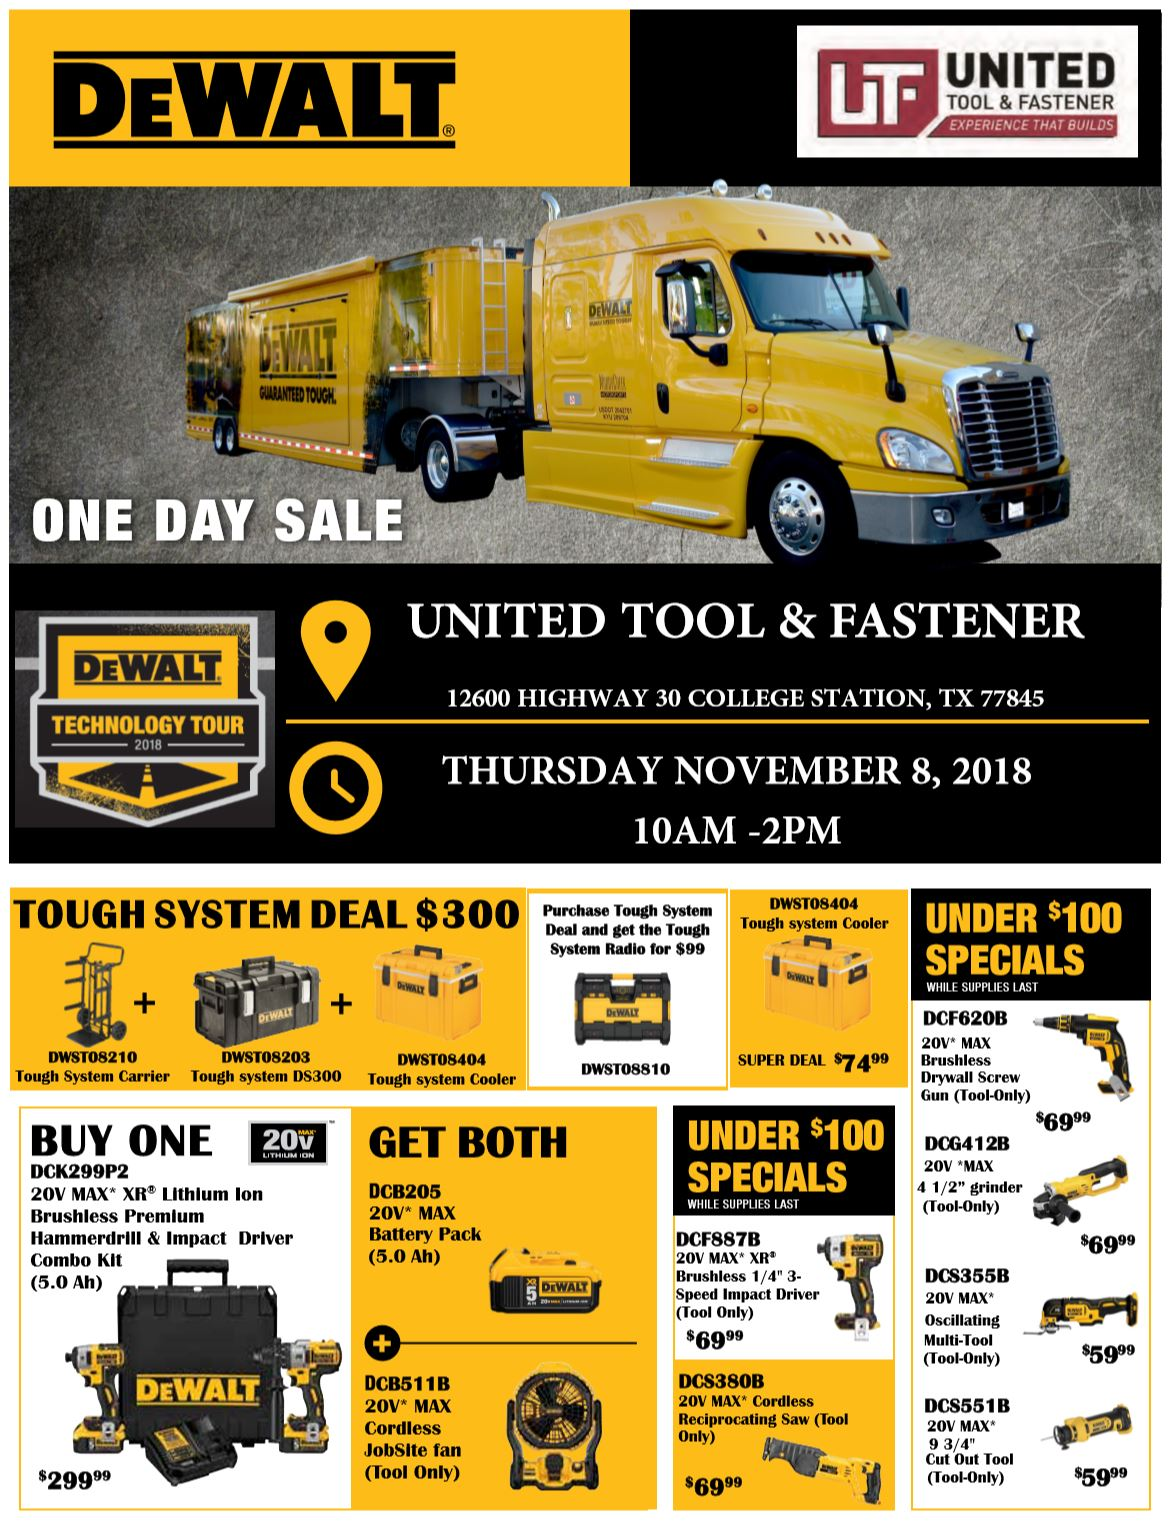 DeWalt College Station 2018 One-Day Sale flyer